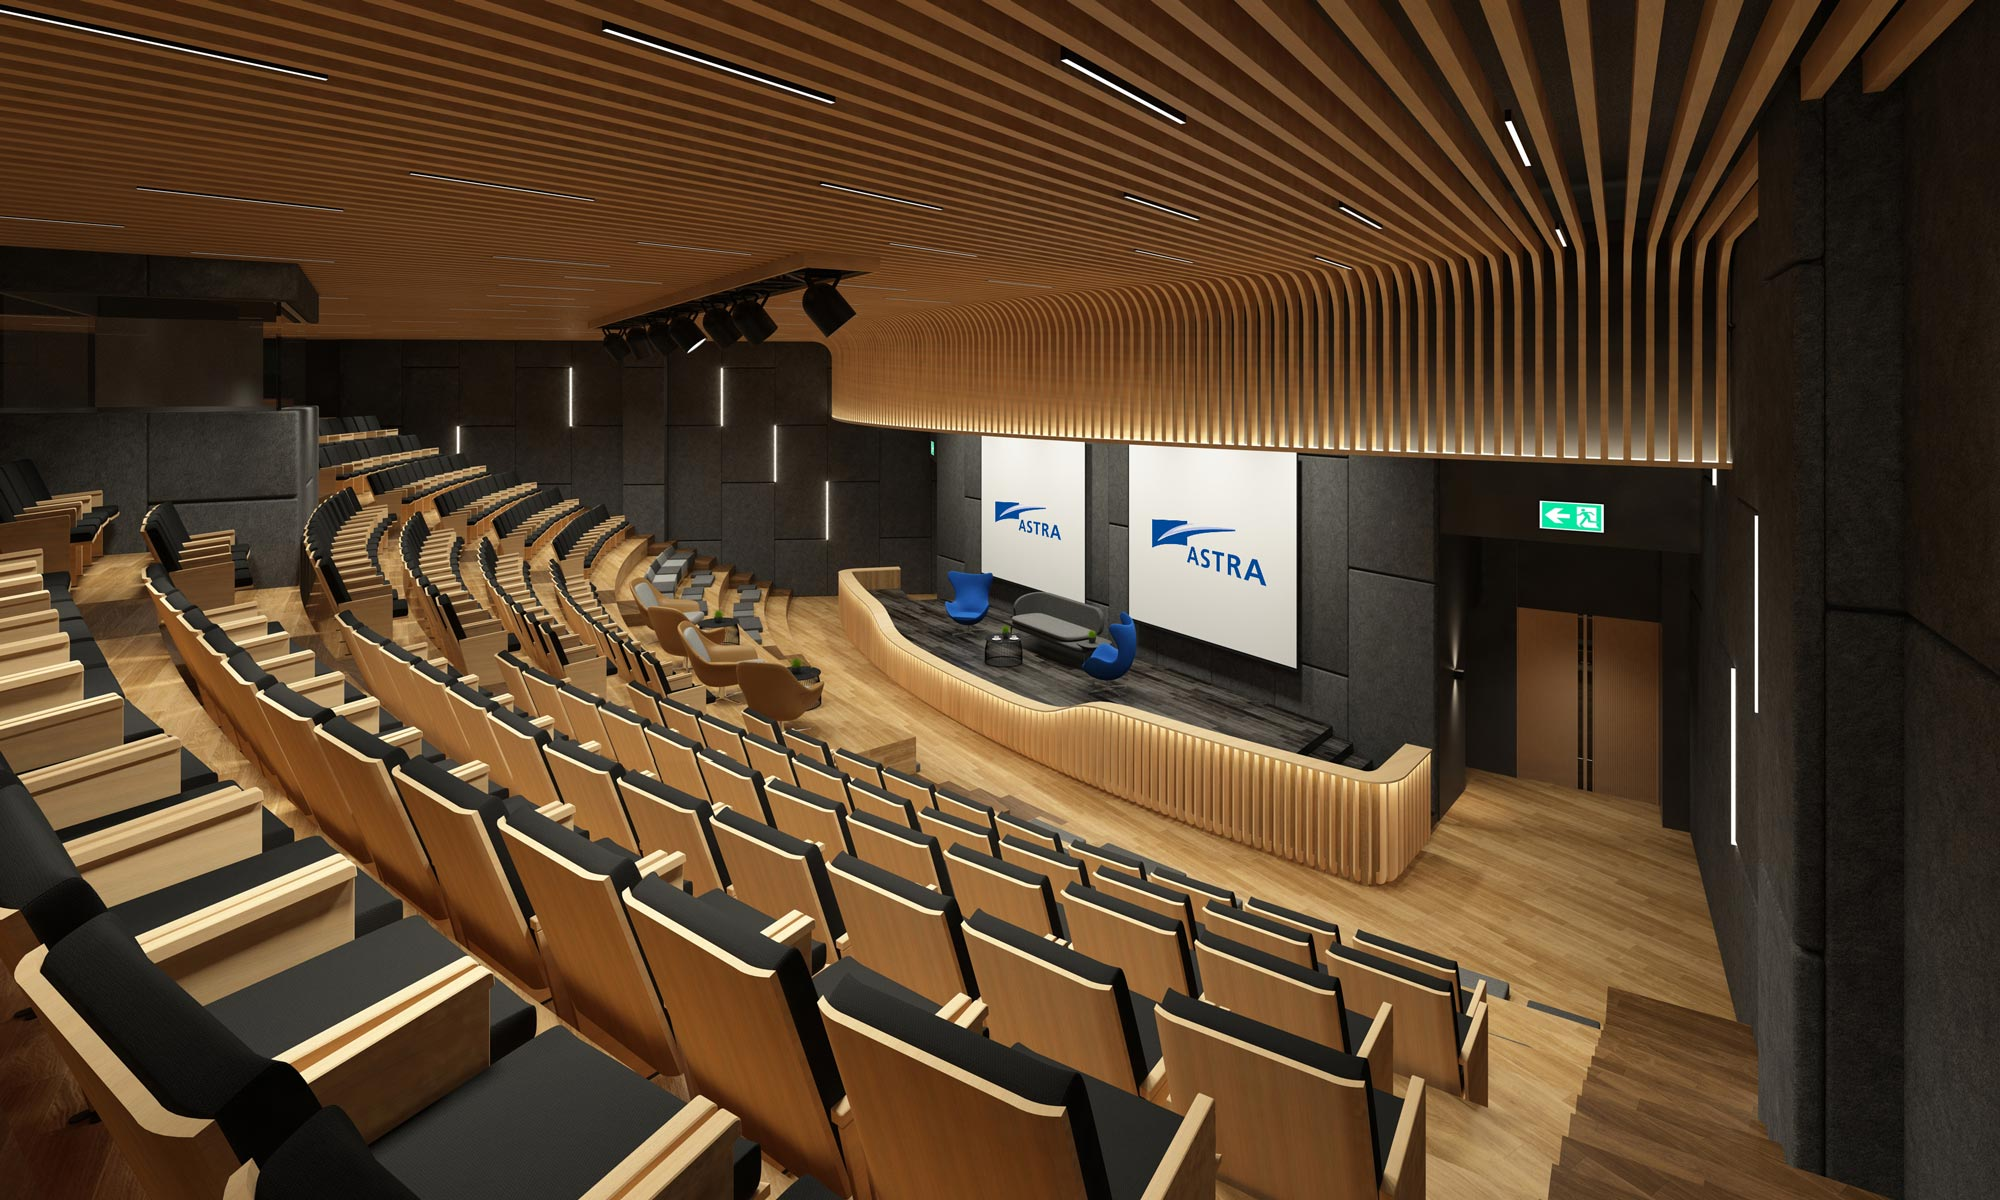 Astra's new auditorium for team gatherings of up to 500 people. Interior design by AVIP.